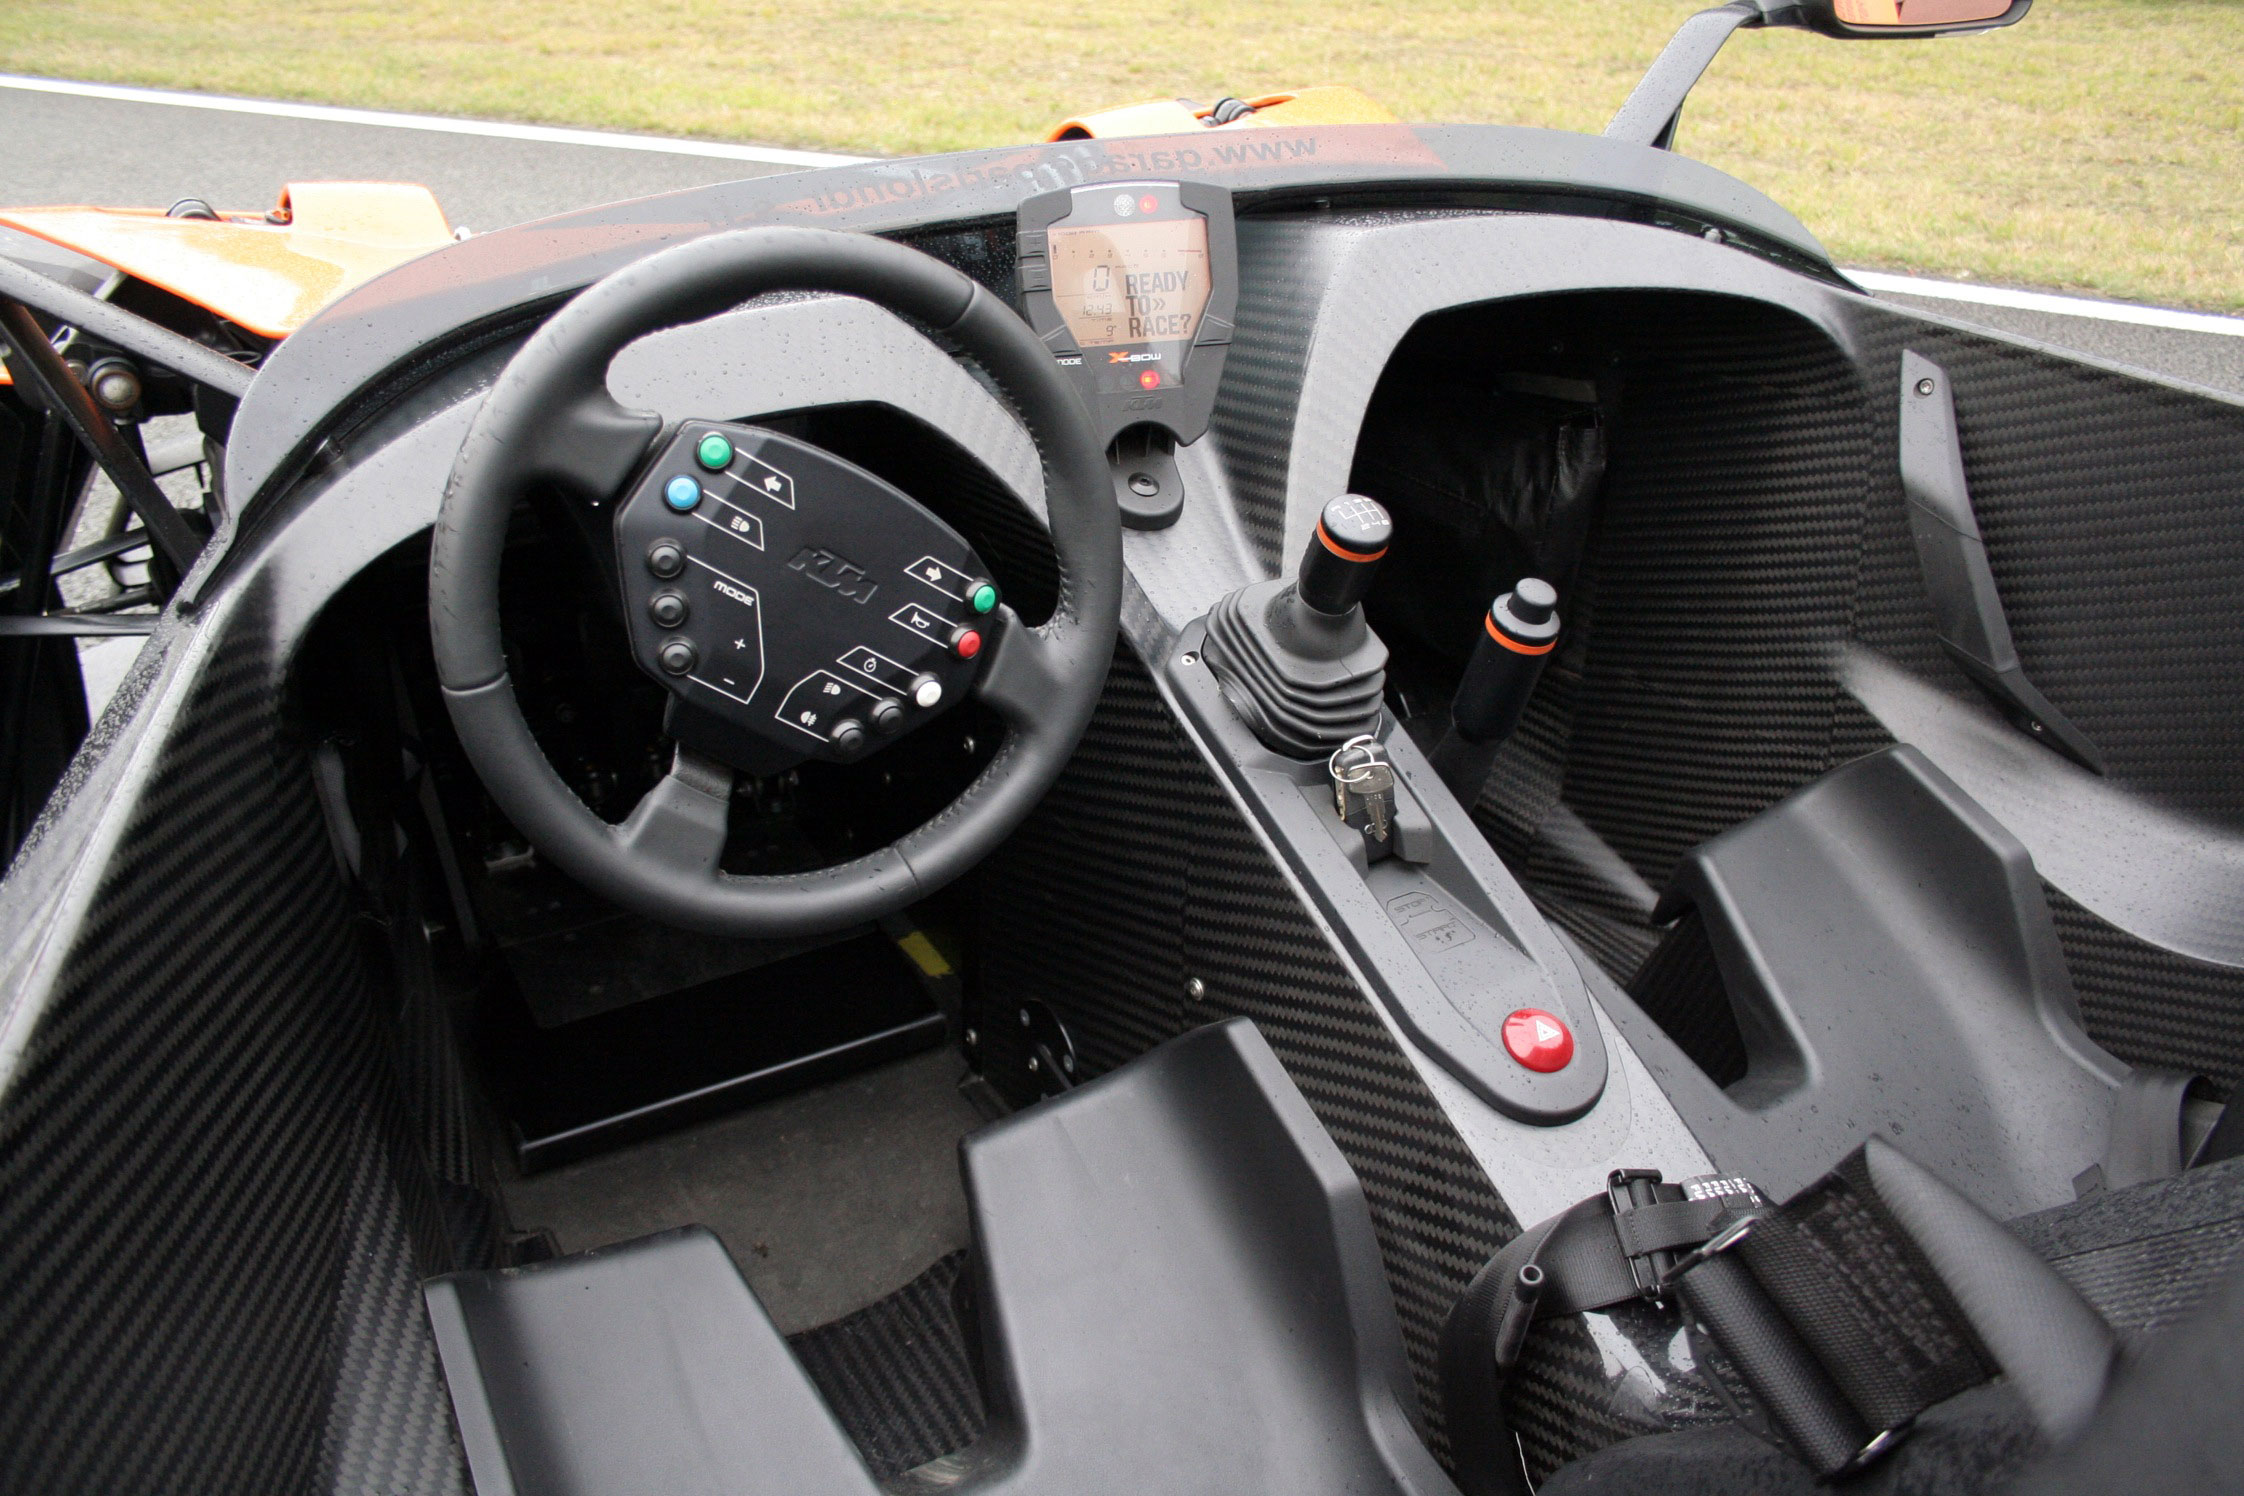 voiture ktm x bow fiche technique. Black Bedroom Furniture Sets. Home Design Ideas